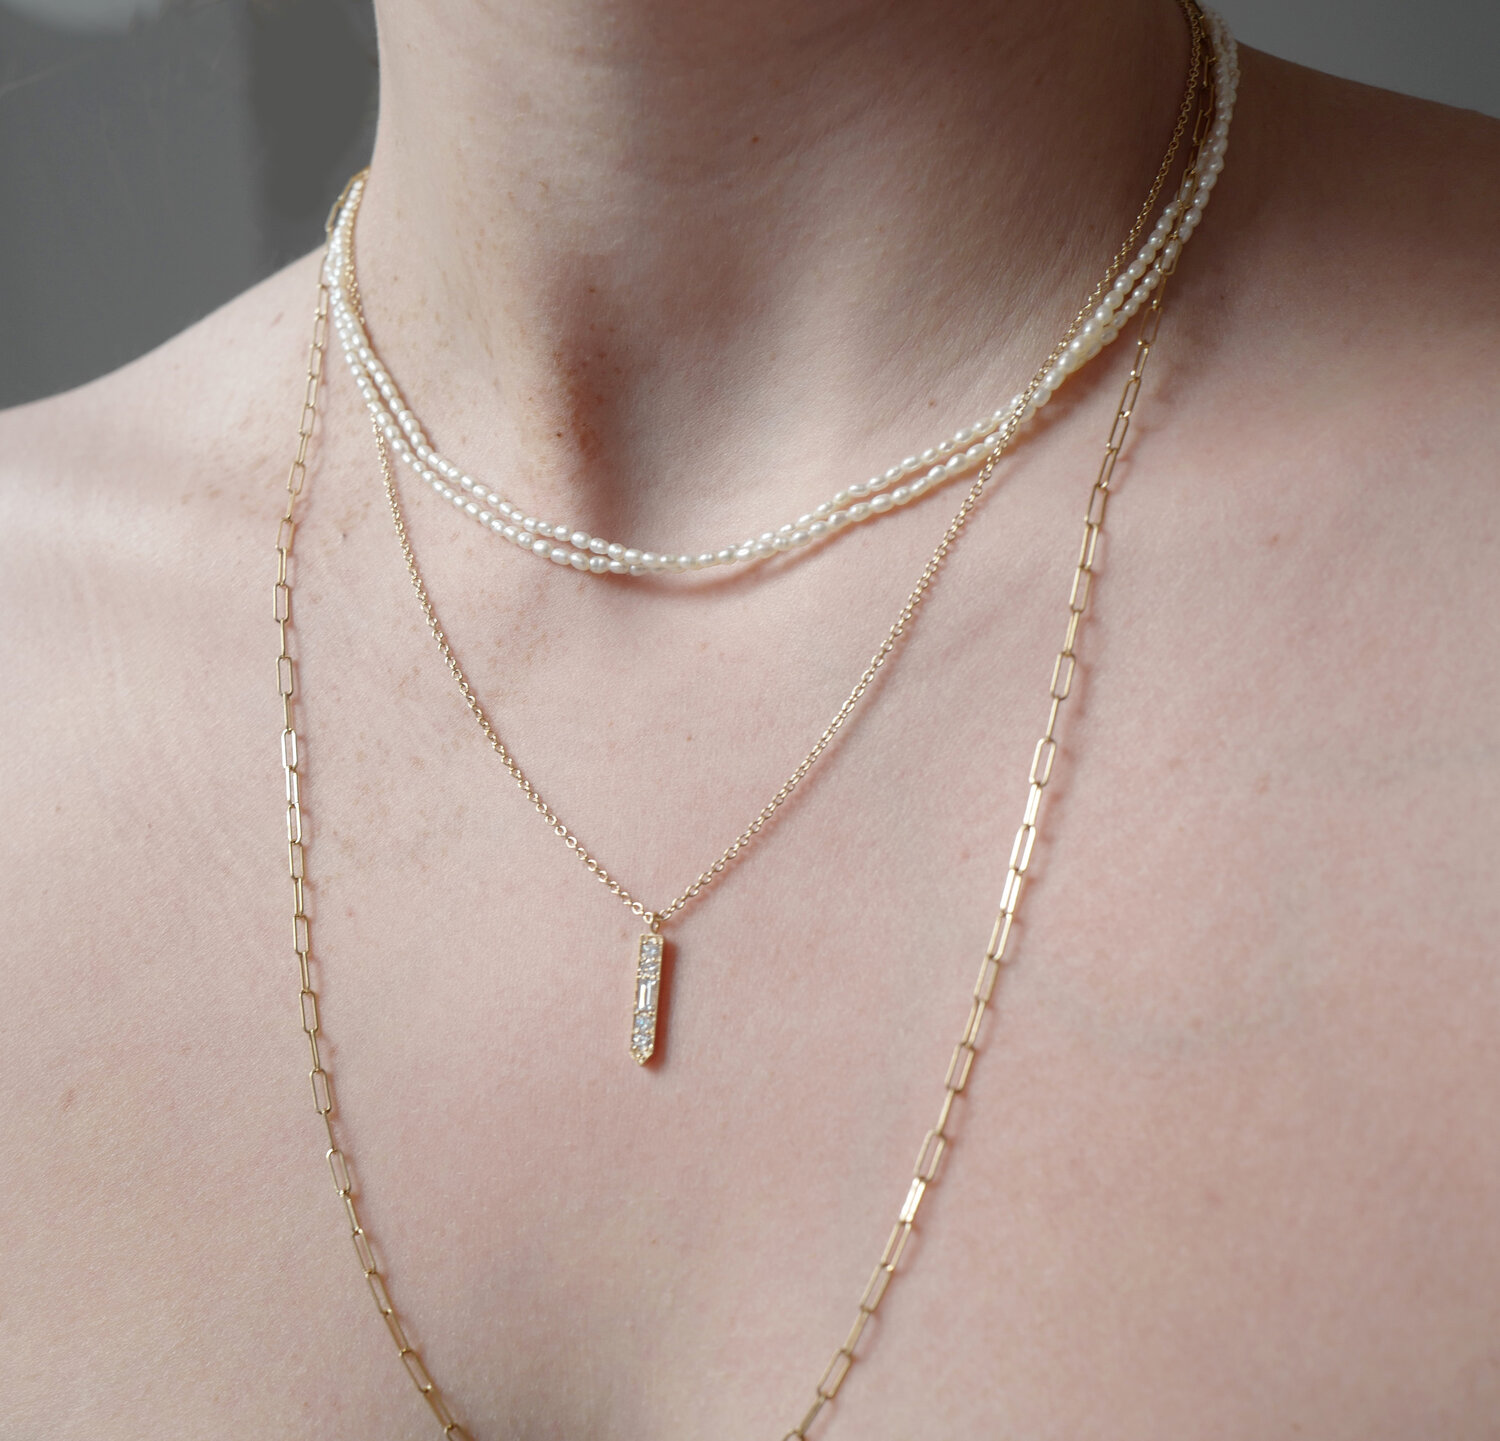 Small Link Chain Ashley Zhang Jewelry